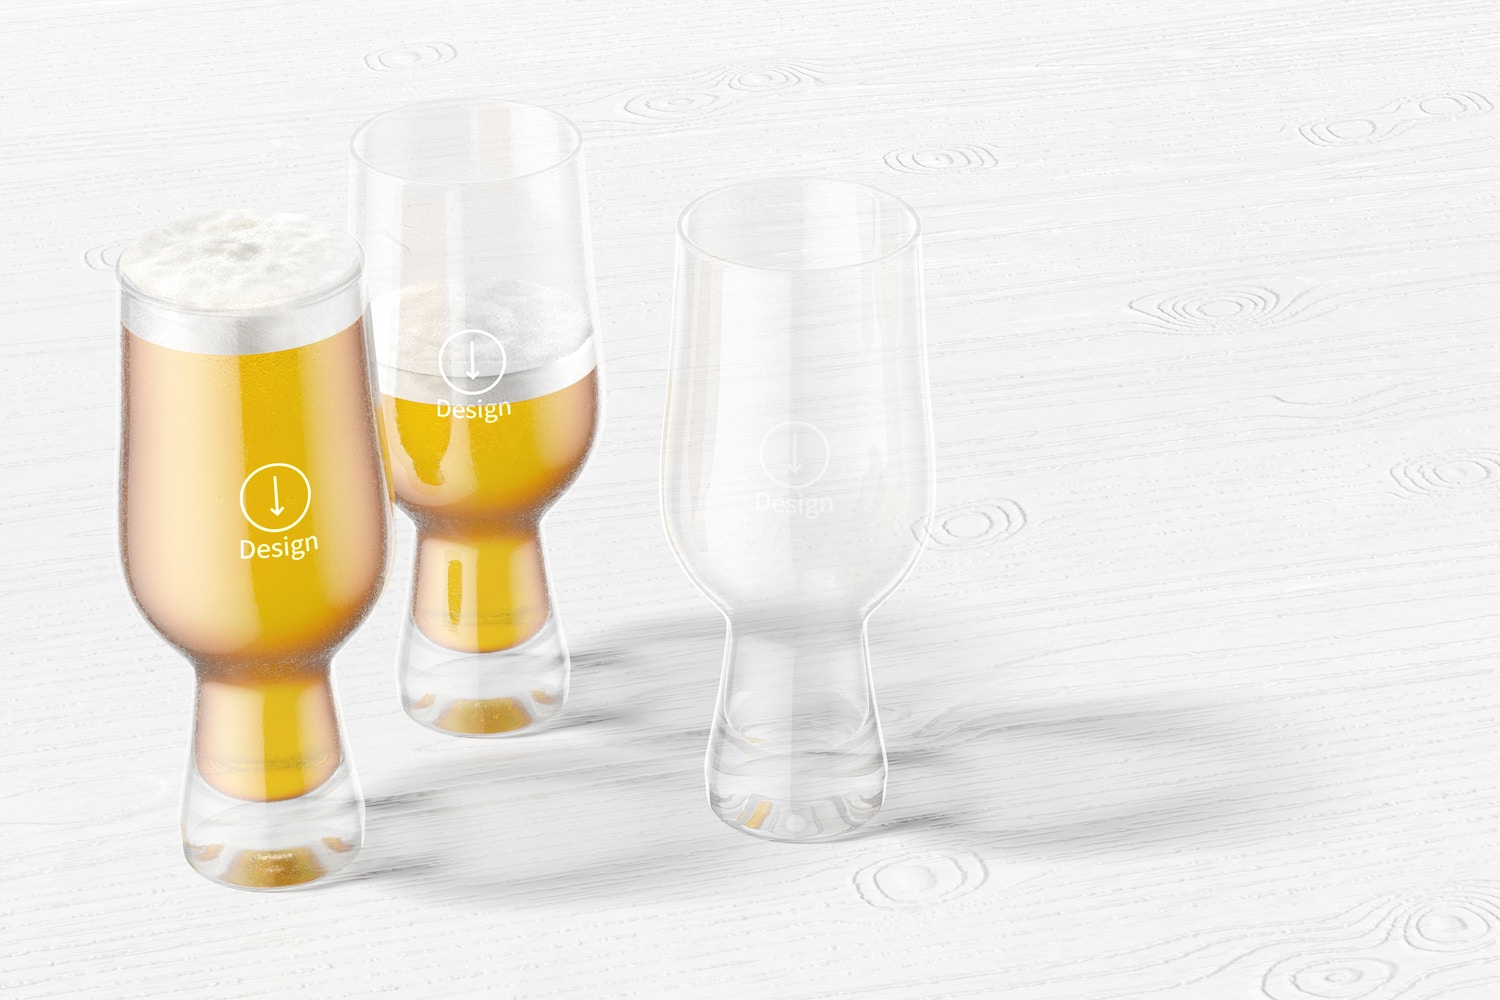 18 oz Glass Beer Cups Mockup, Perspective